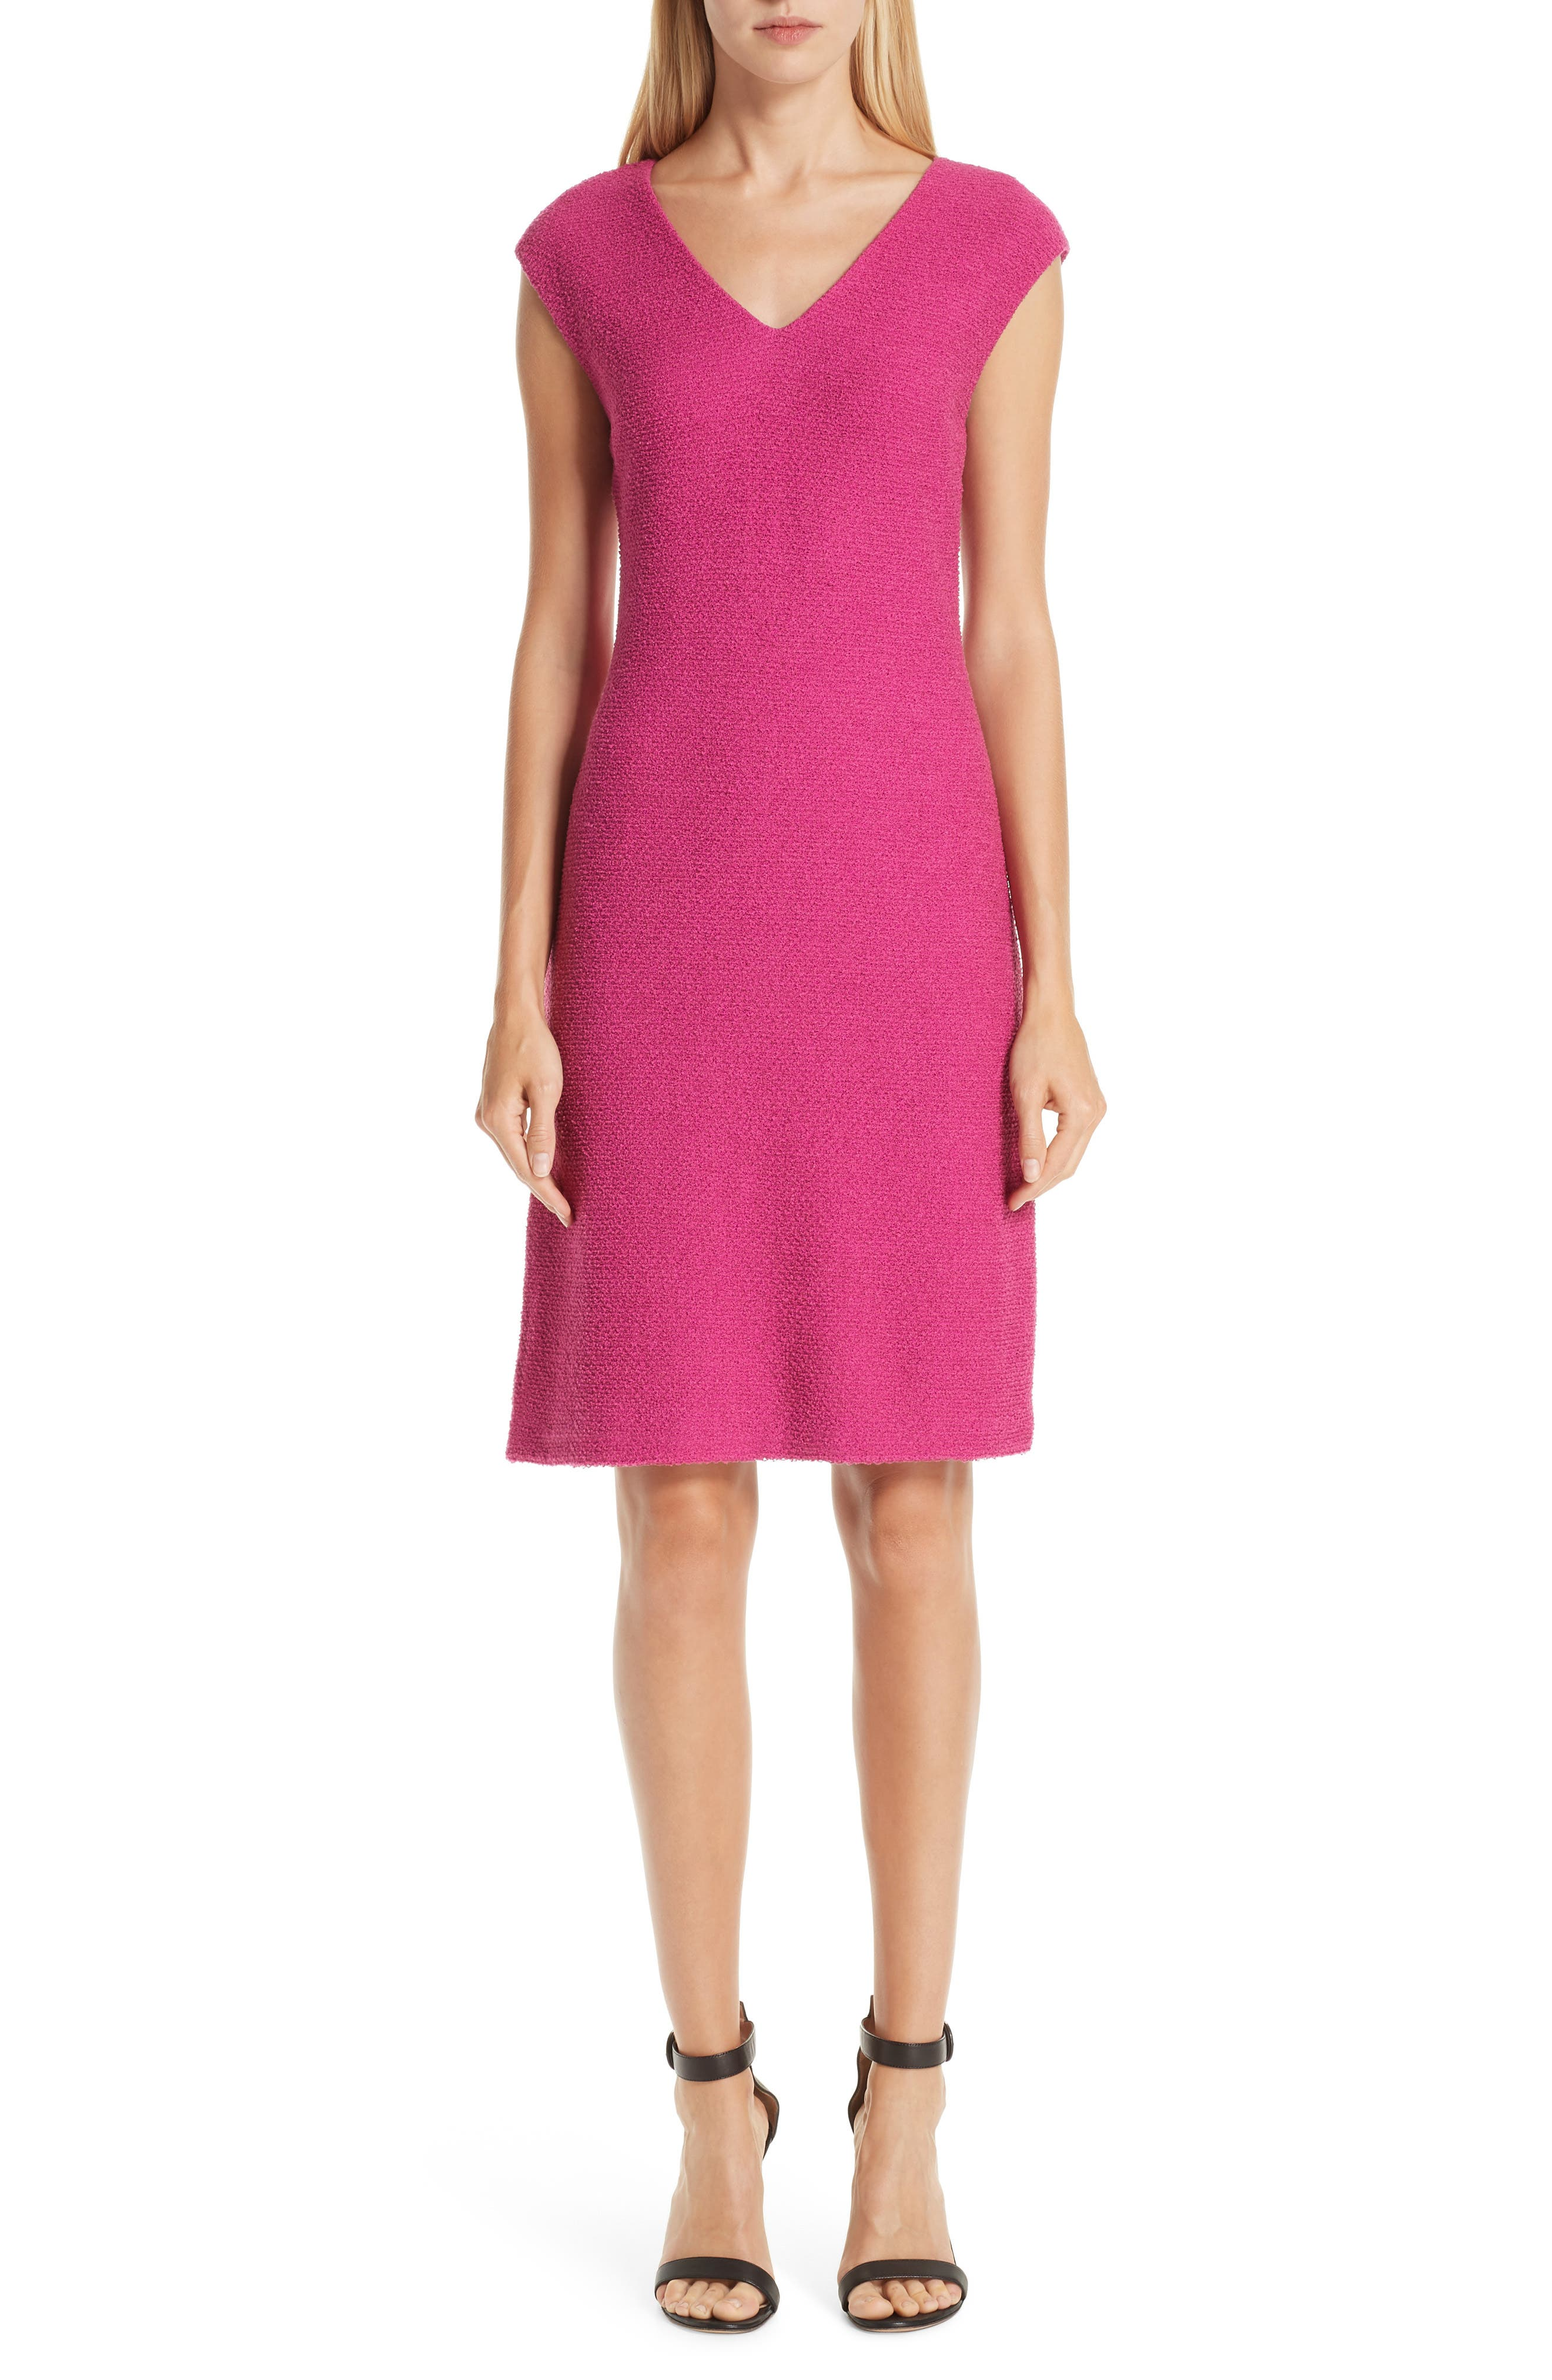 ST. JOHN COLLECTION, Refined Knit Dress, Main thumbnail 1, color, CAMELLIA